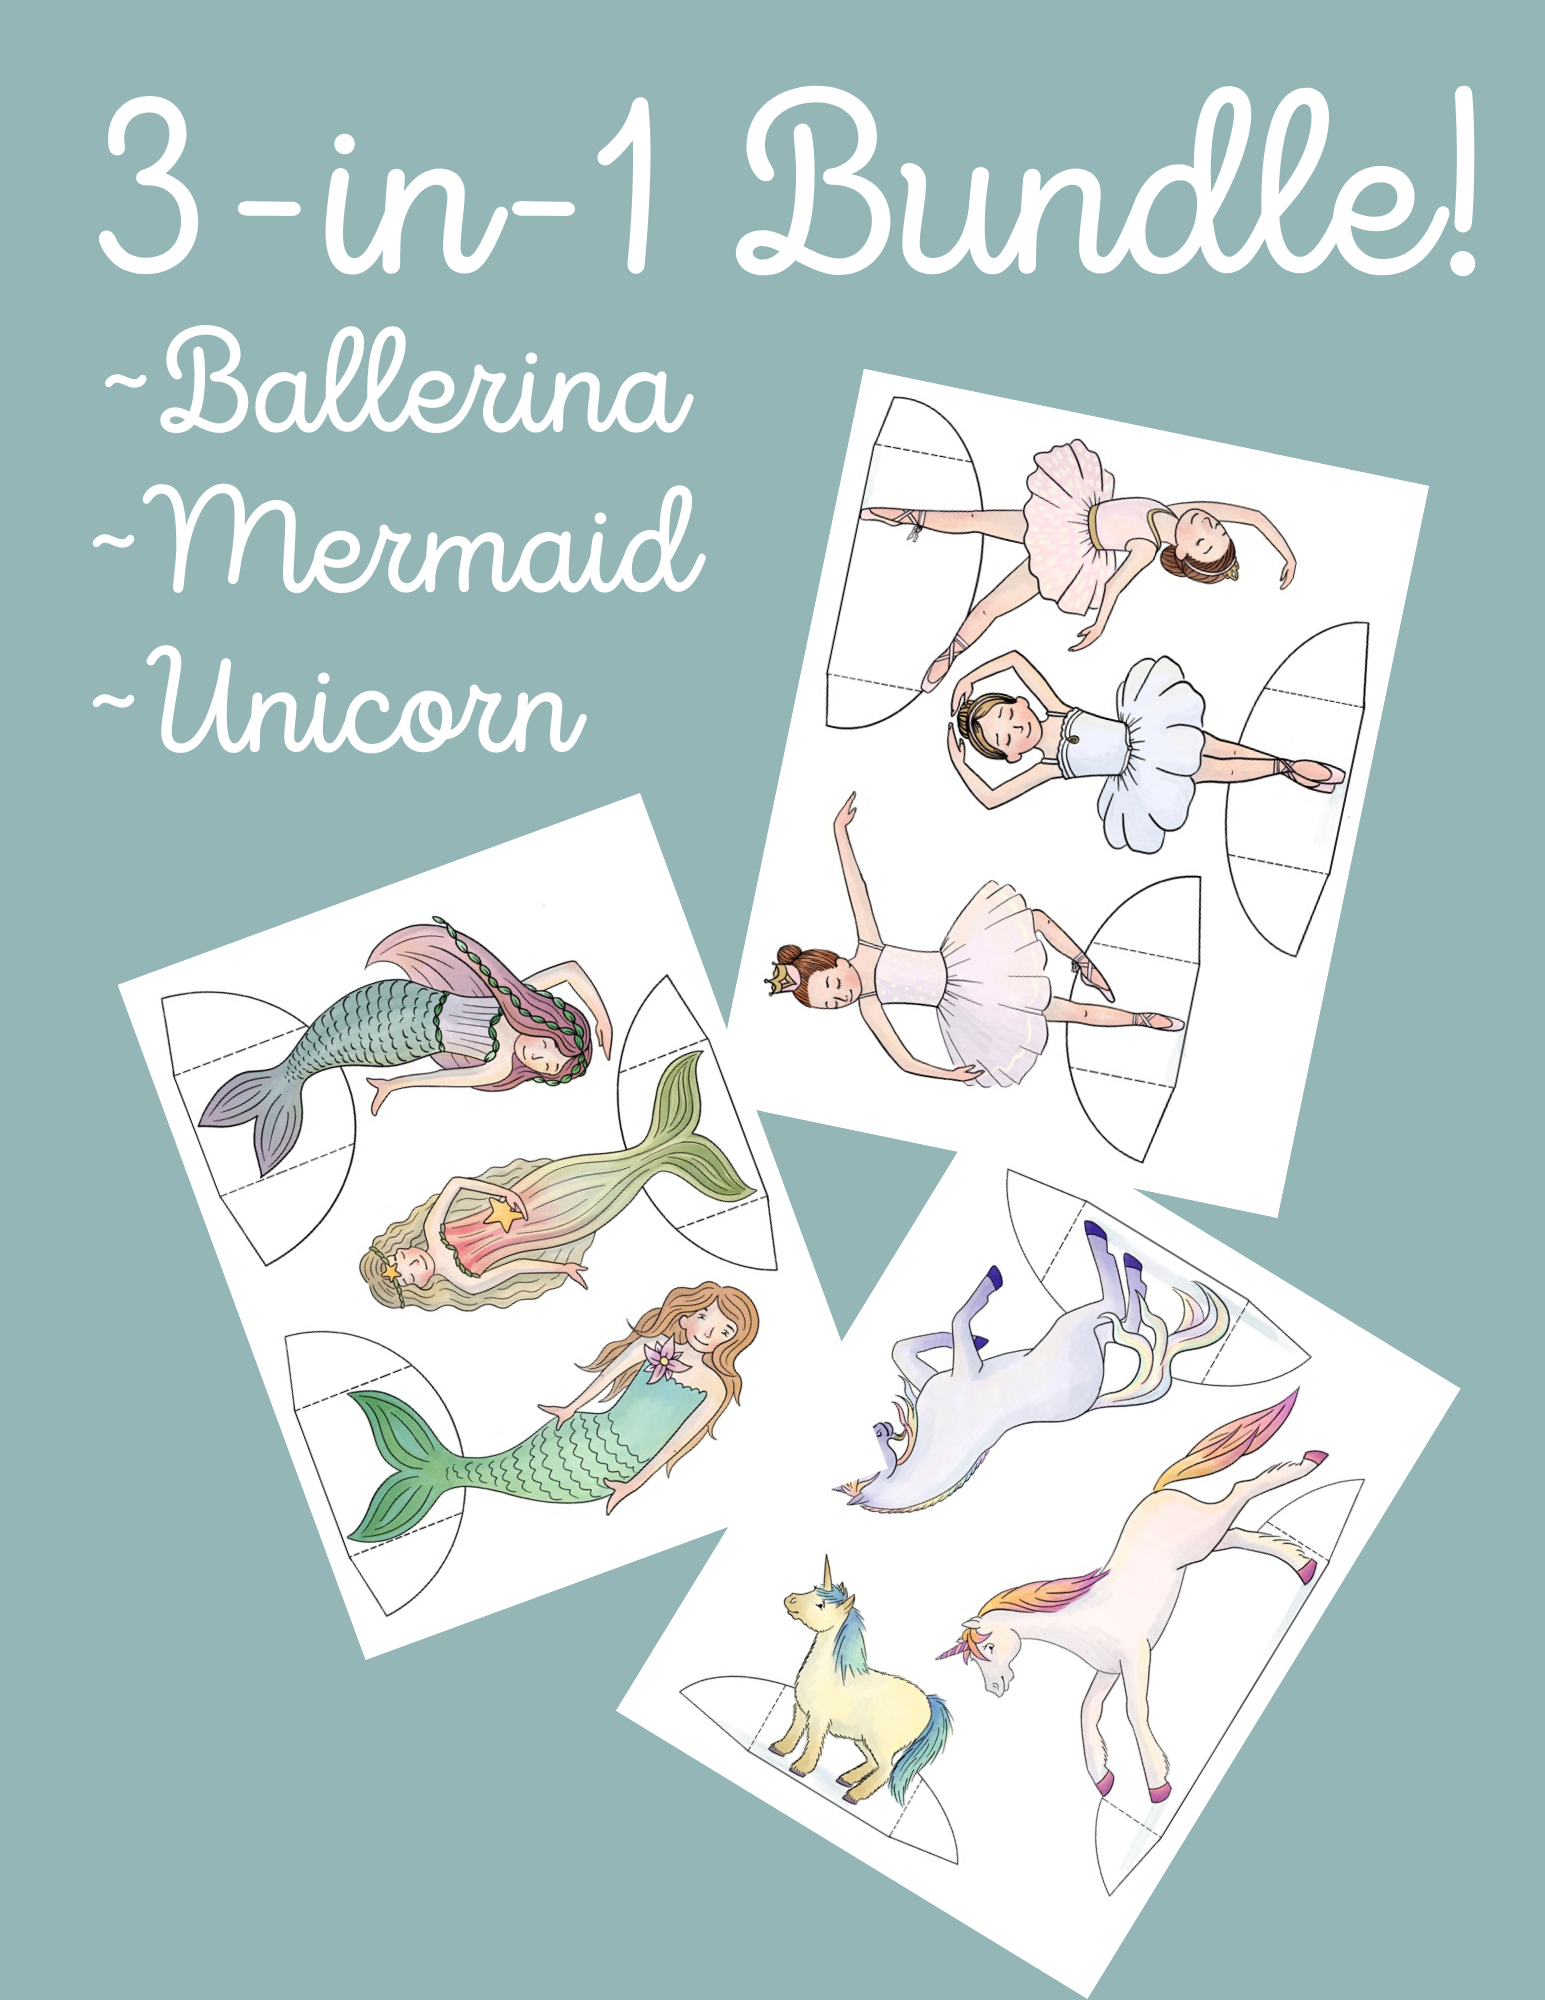 Printable Paper Dolls Bundle Ballerinas, Mermaids and Unicorns. Full color or color-your-own, plus background scenes.